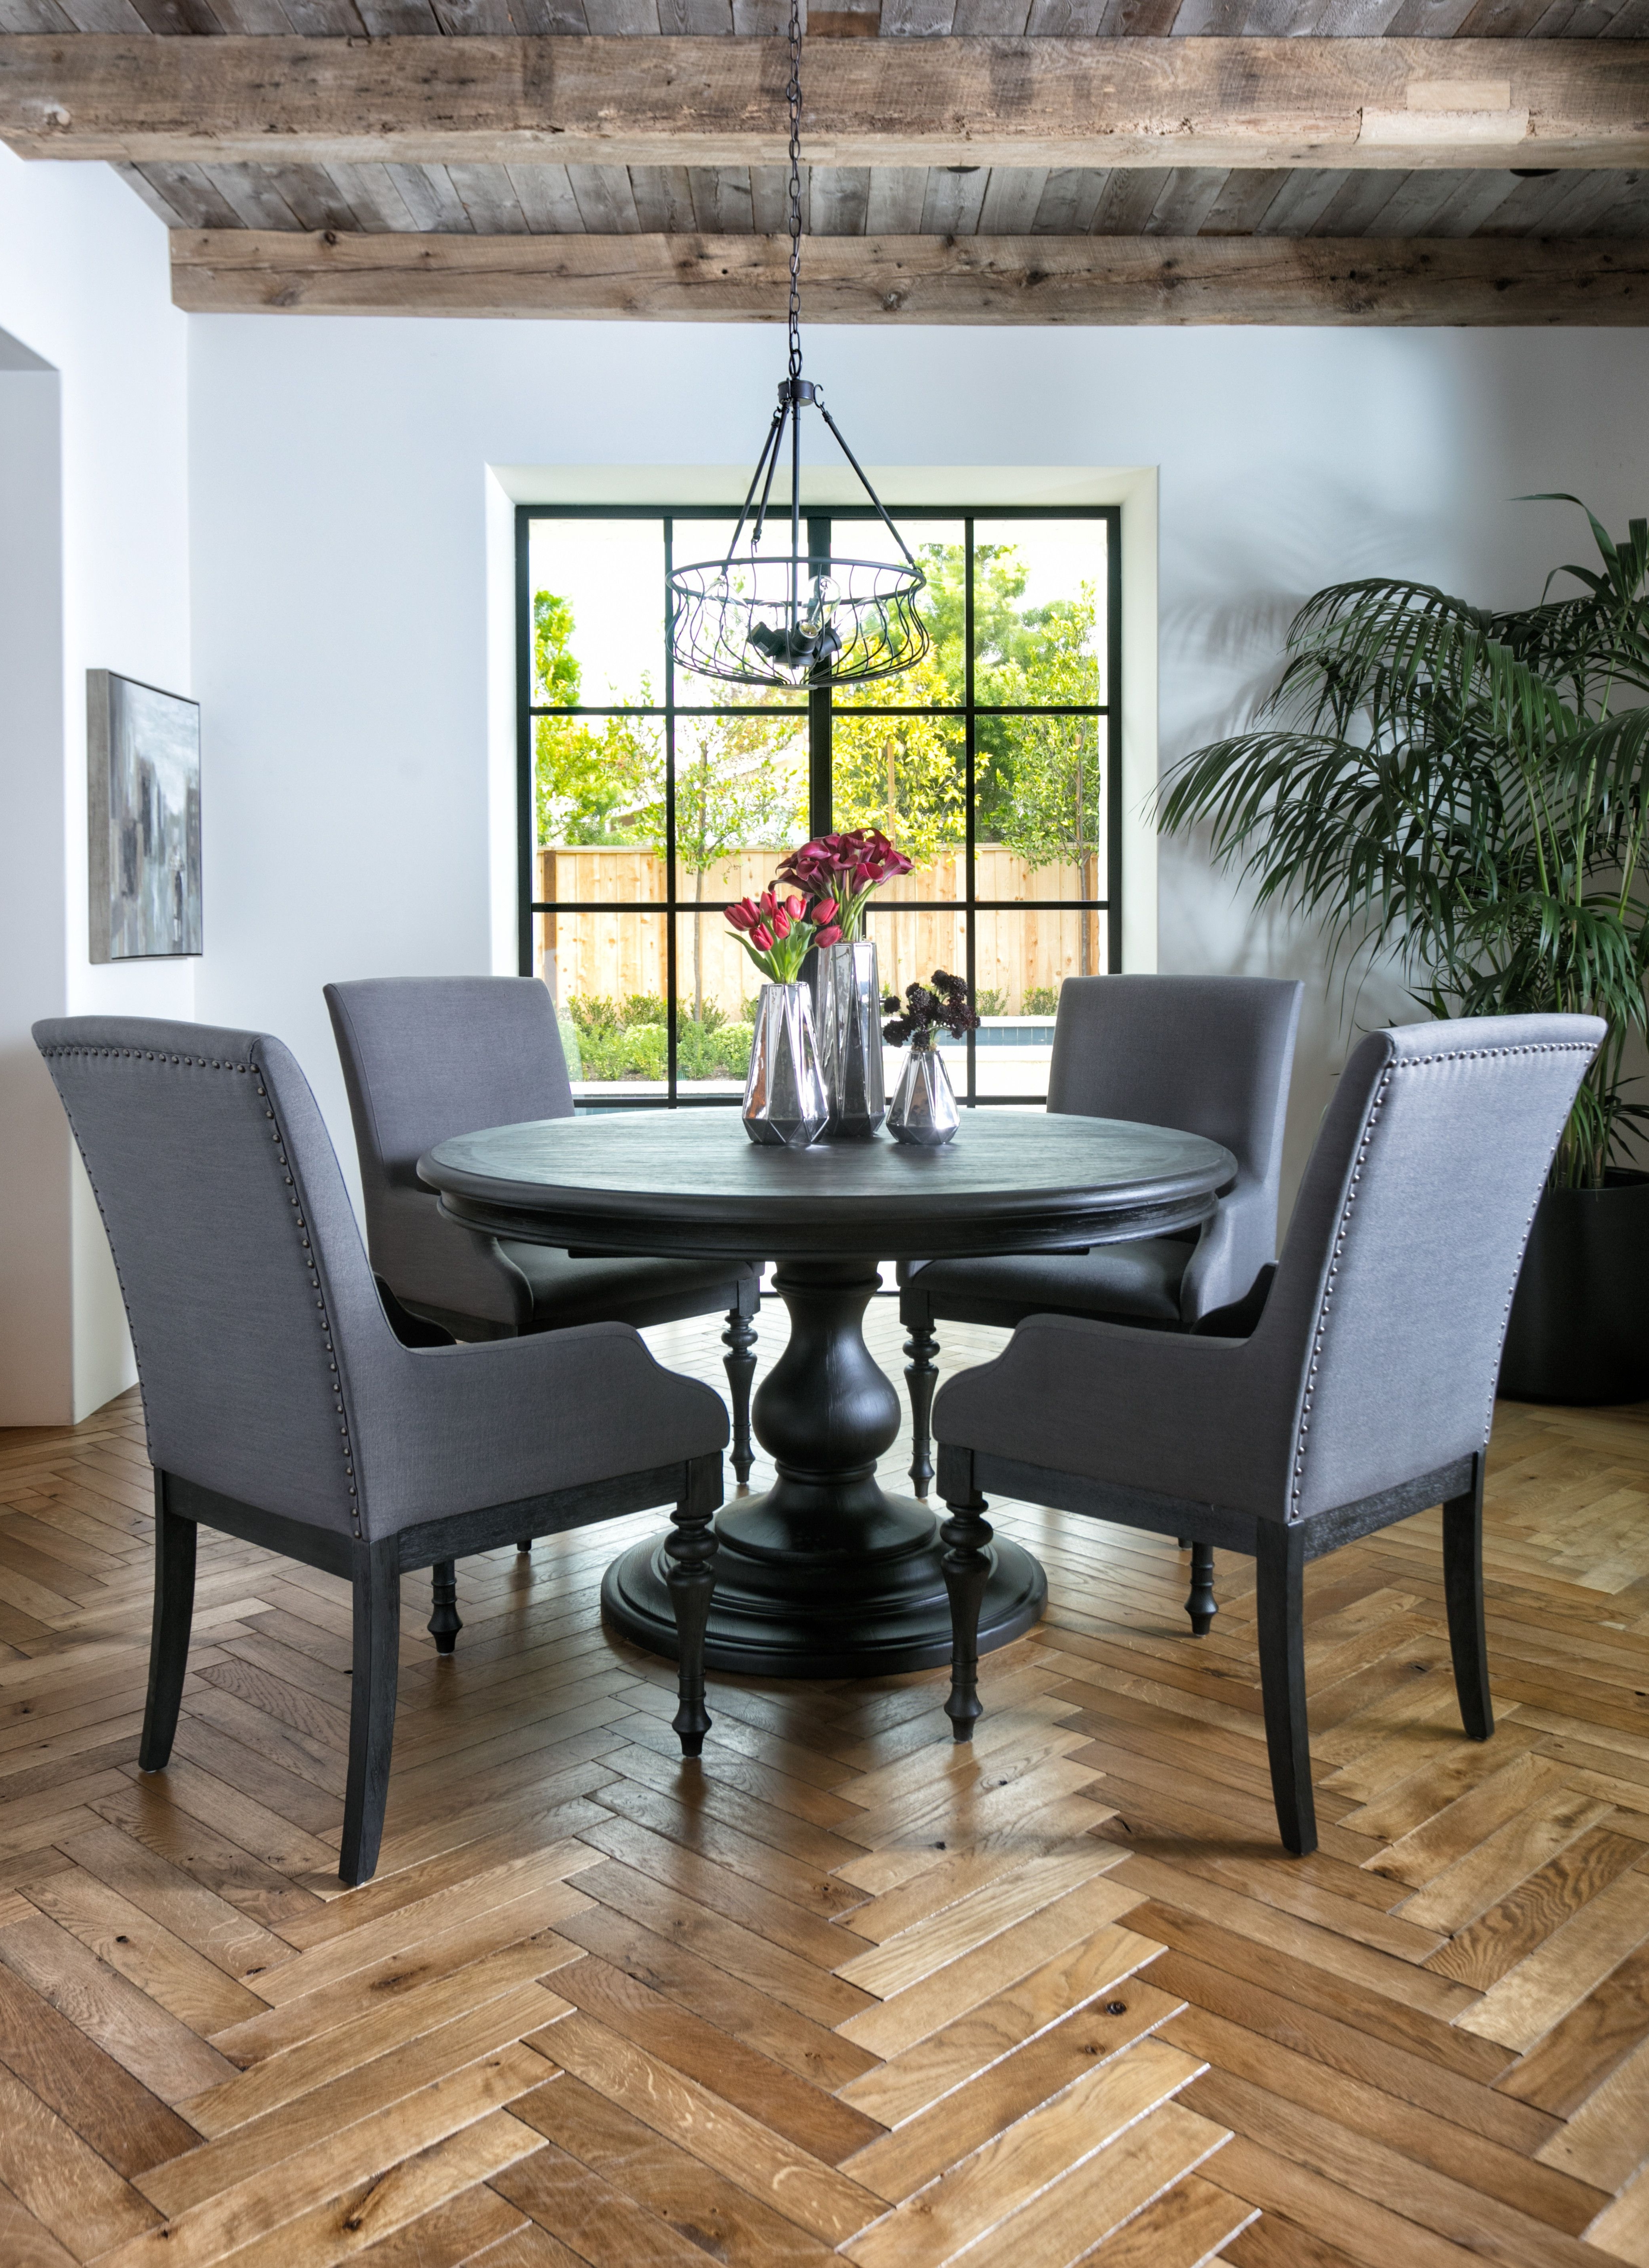 Caira Black 5 Piece Round Dining Set With Diamond Back Side Chairs With 2018 Caira 7 Piece Rectangular Dining Sets With Diamond Back Side Chairs (View 5 of 25)